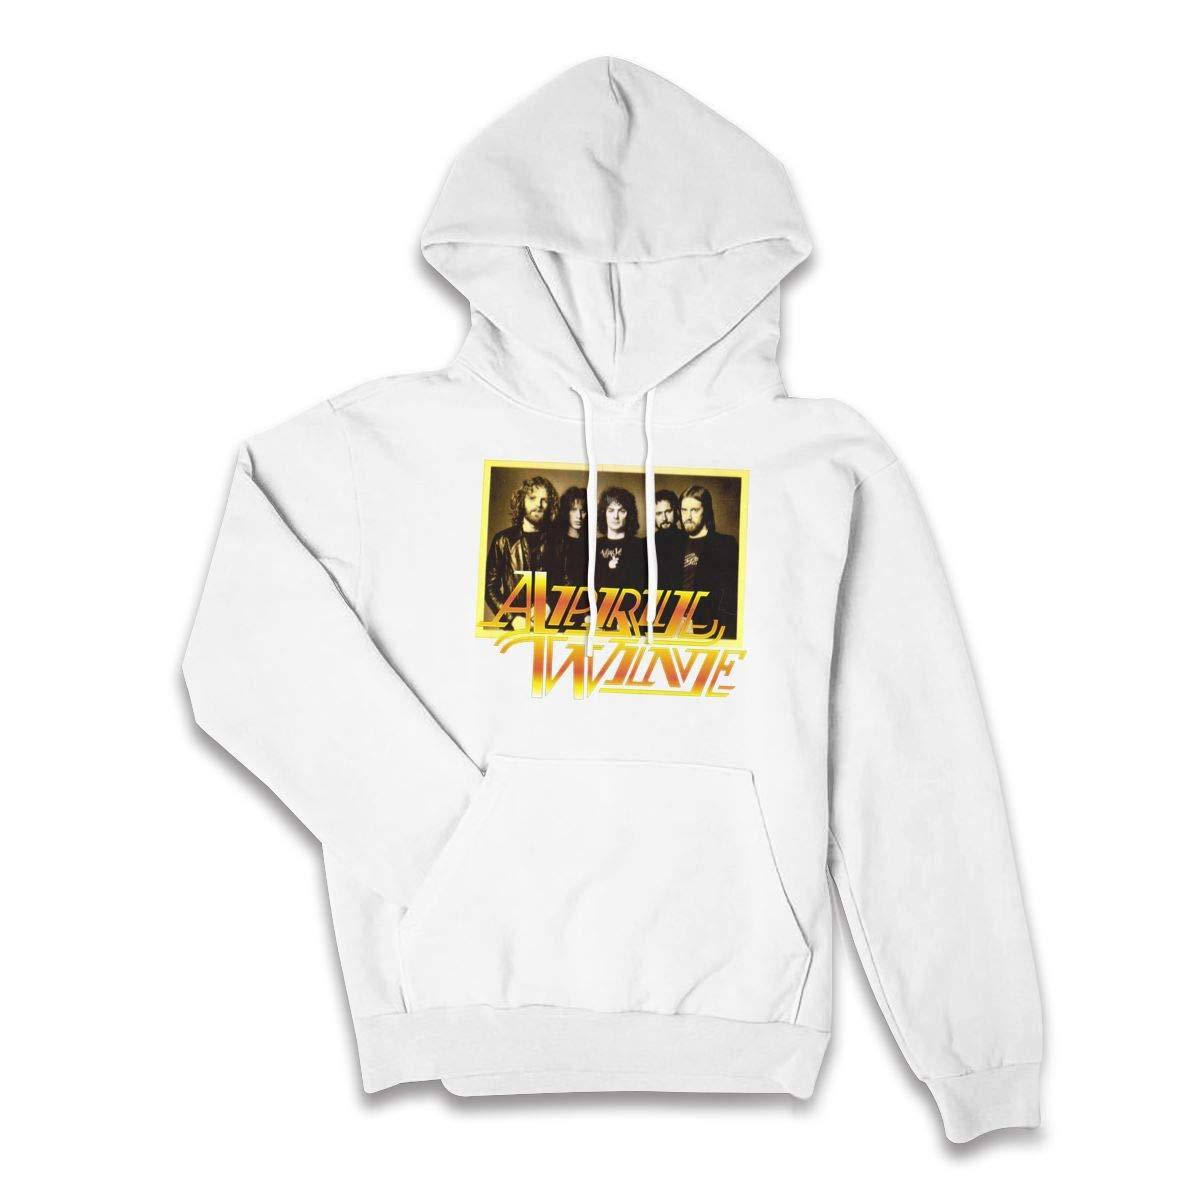 Cotton Pullover Hooded Shirts with Pocket XL 1 Womens Color Name Sweatshirt Hoodie Classic April Wine